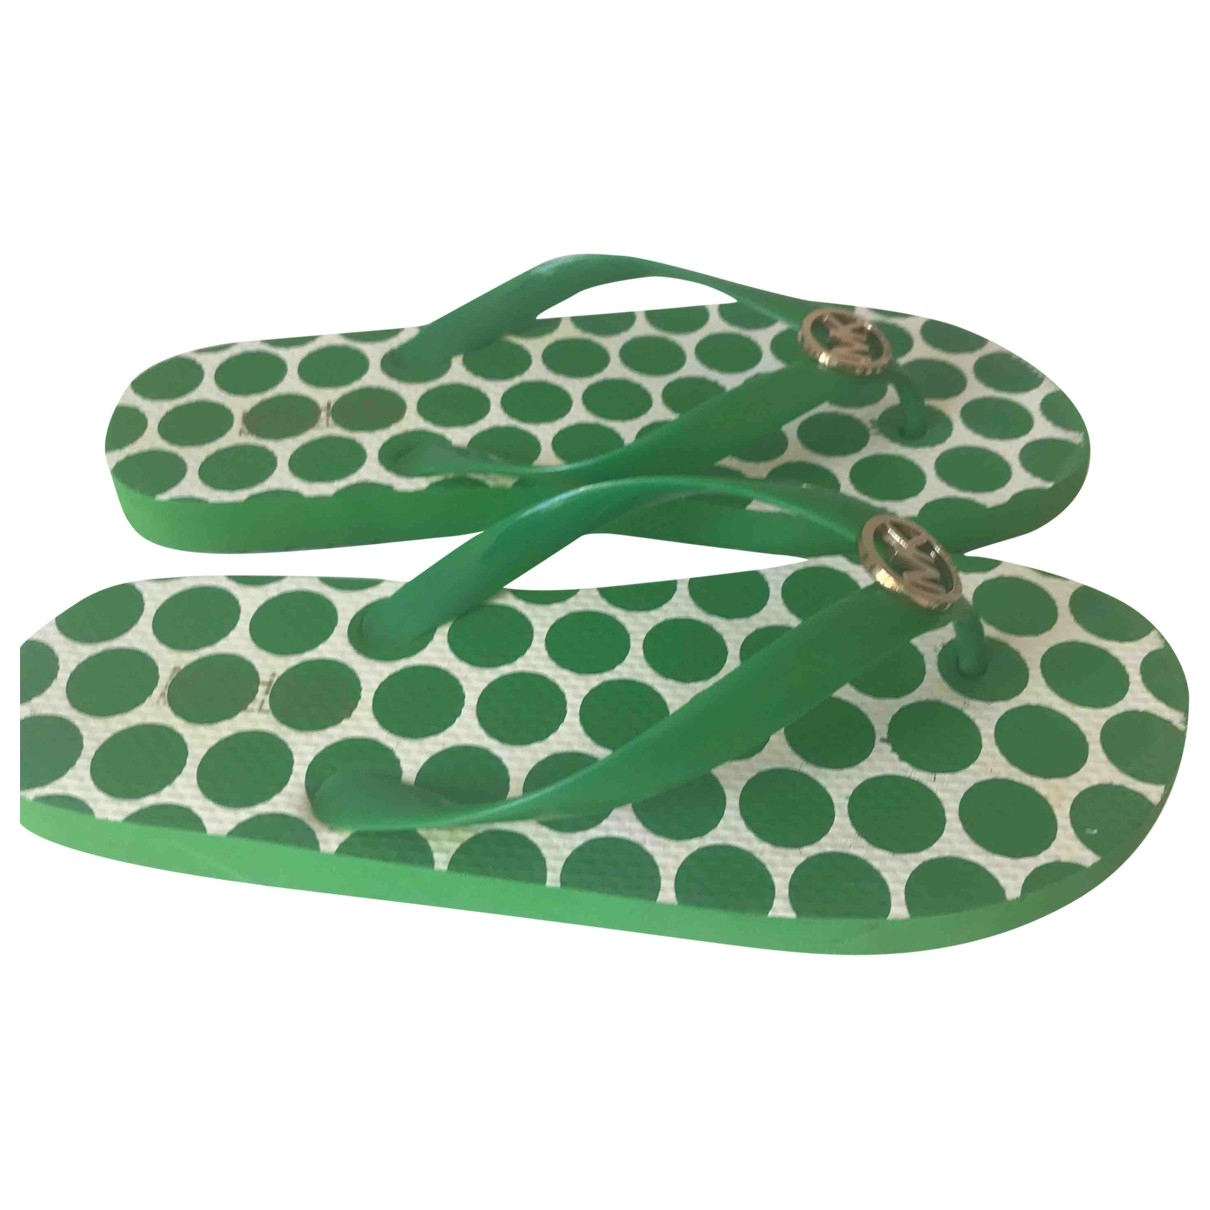 Michael Kors \N Green Rubber Flats for Women 9 US